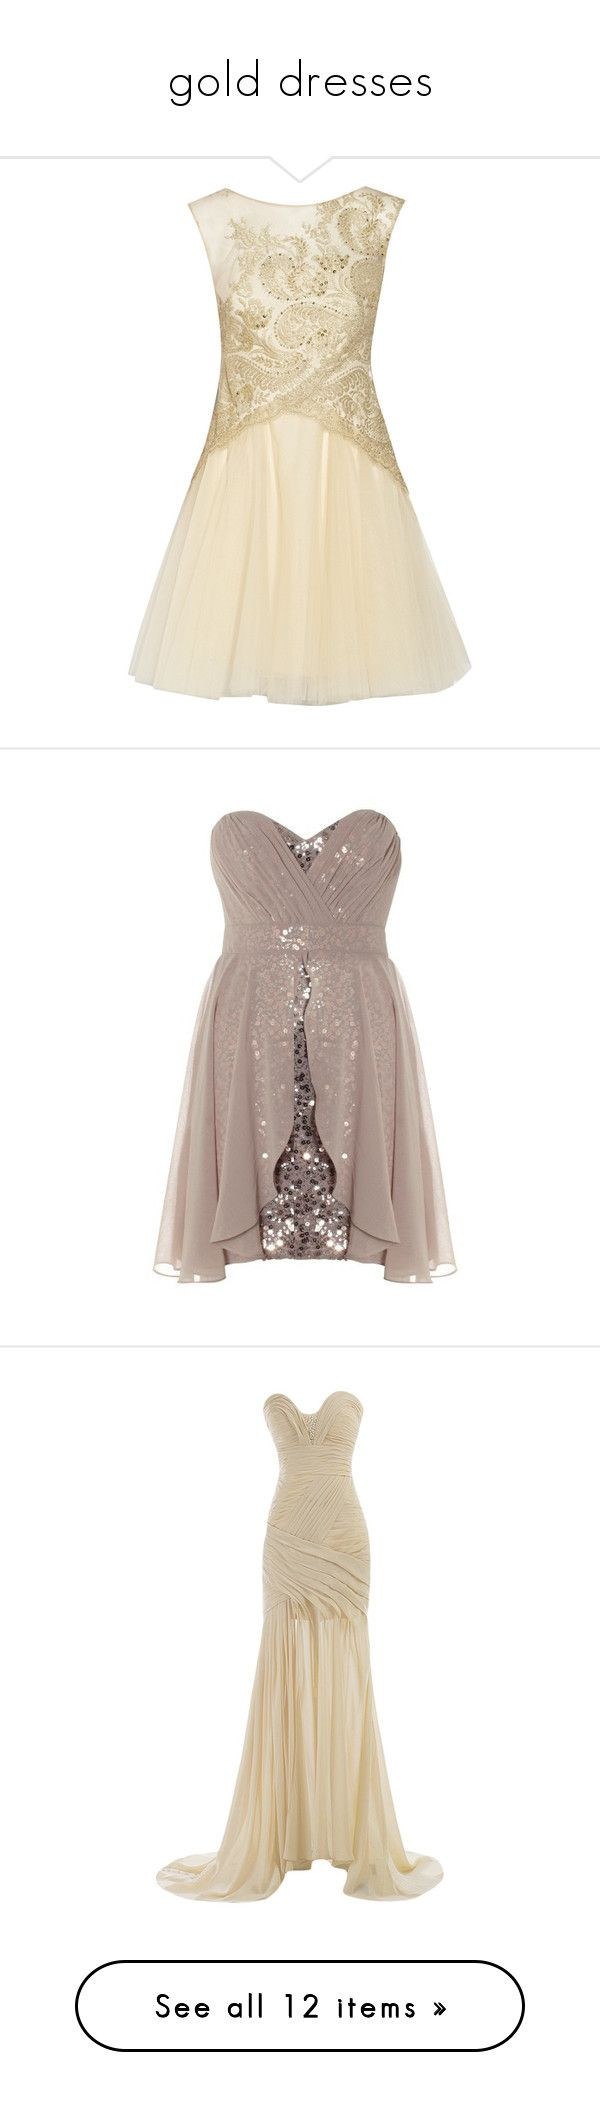 """""""gold dresses"""" by megsjessd99 ❤ liked on Polyvore featuring dresses, short dresses, vestidos, marchesa, ecru, embroidered tulle dress, brown dresses, short tulle dress, embroidery dress and robes"""